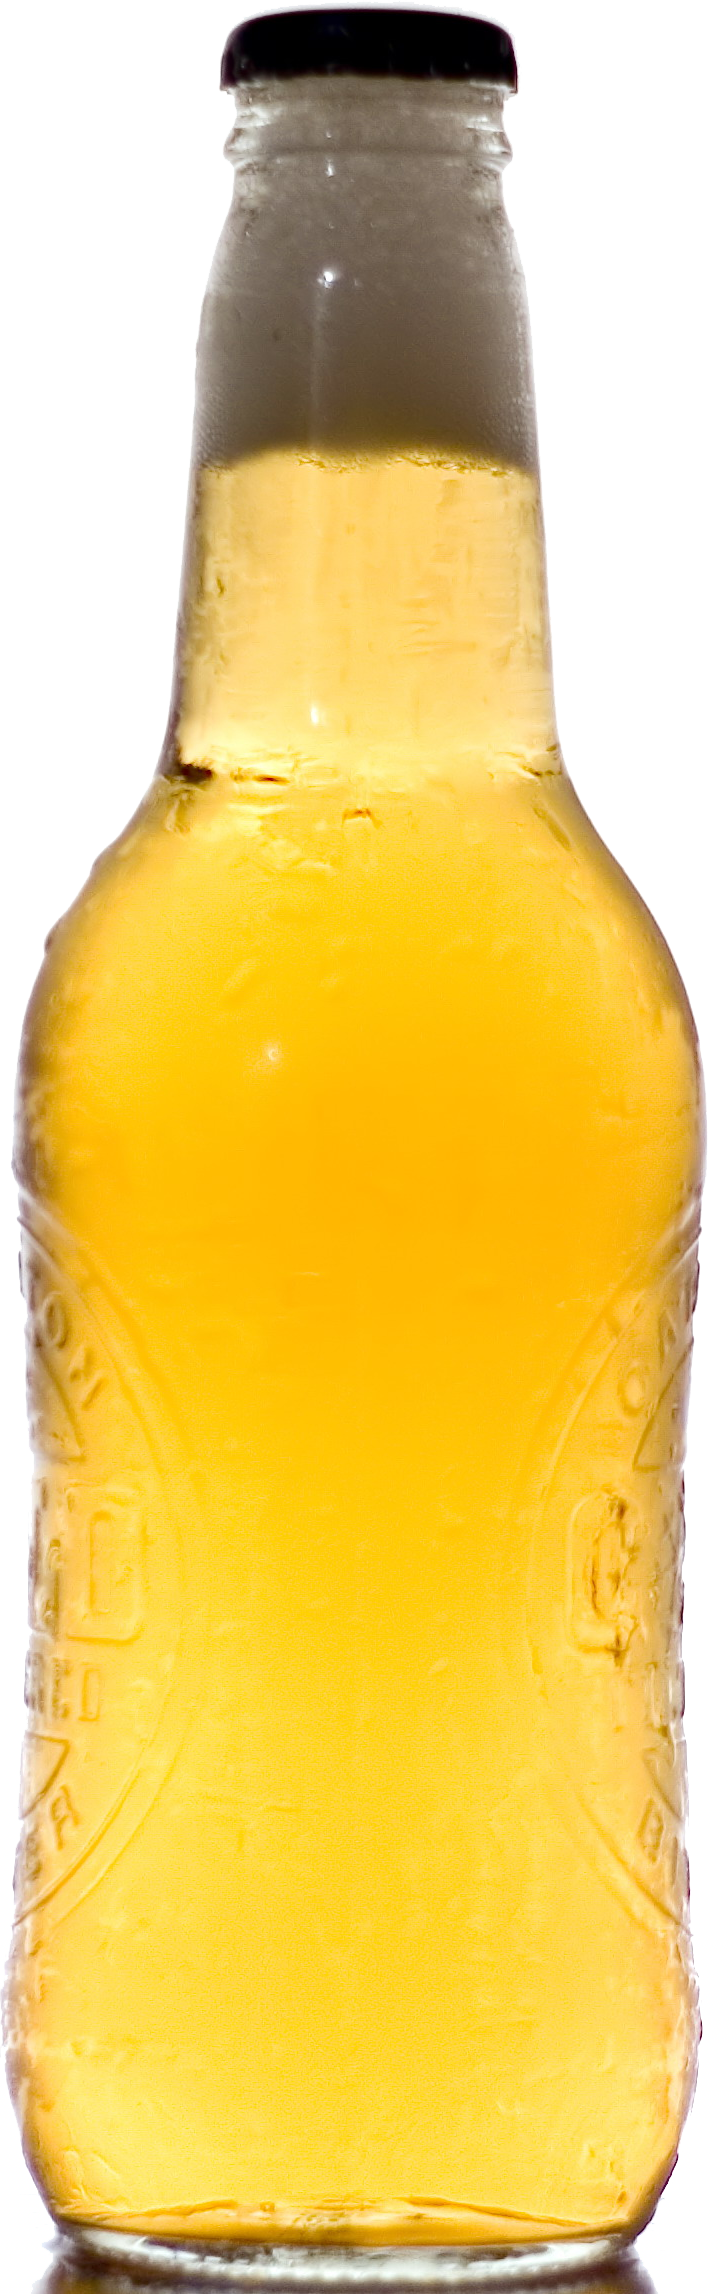 Beer bottle PNG image, download picture - Beer Bottle PNG HD